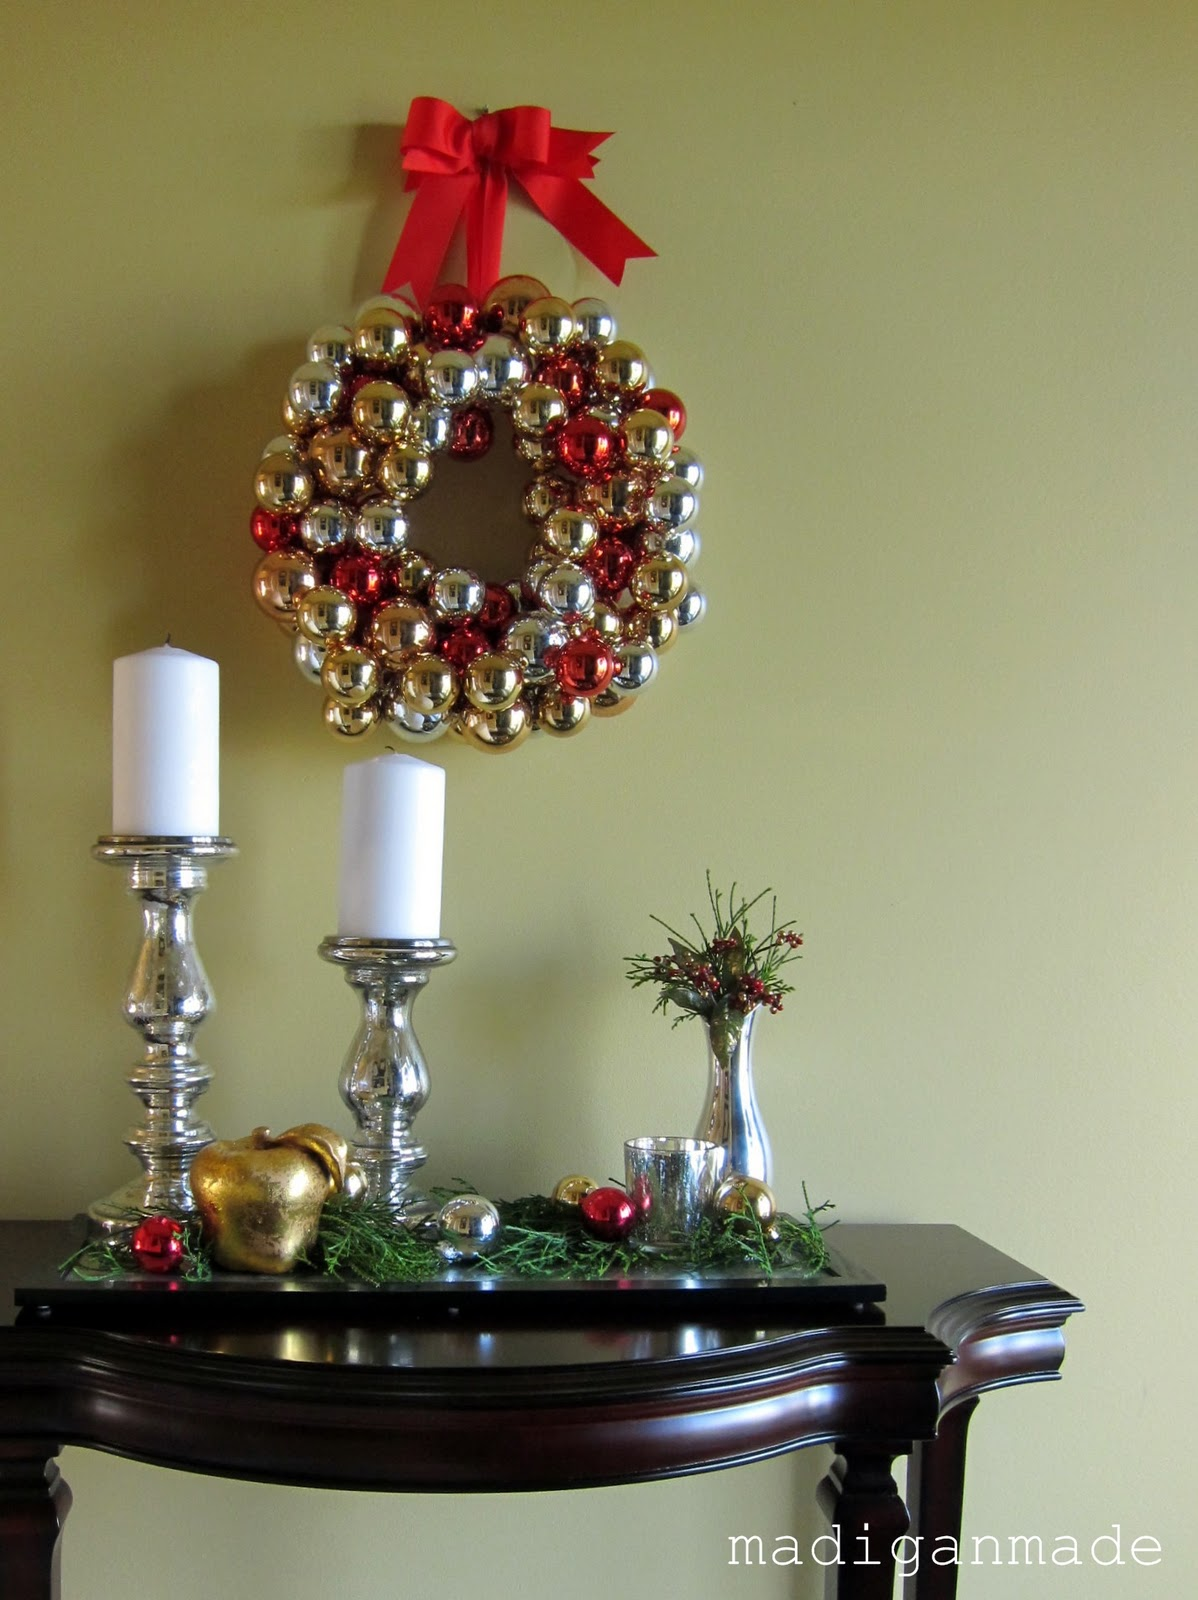 10 simple diy holiday ideas gifts crafts d cor Pinterest home decor crafts christmas